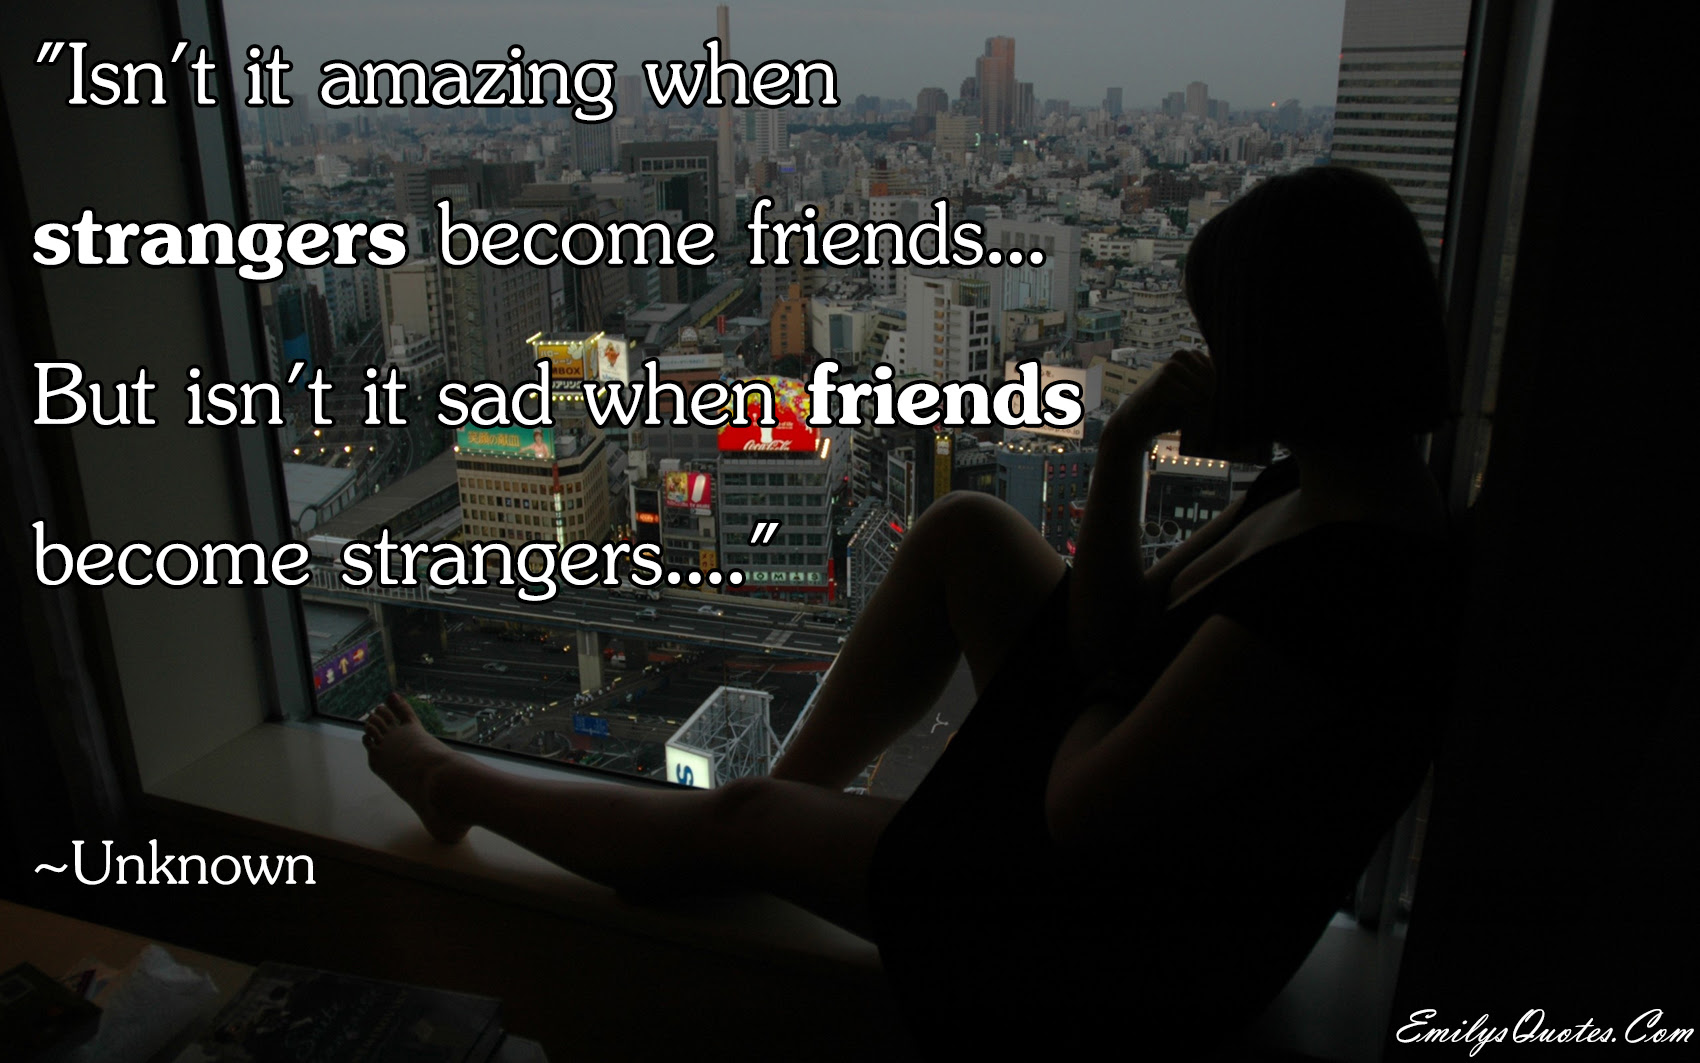 Isnt It Amazing When Strangers Become Friends But Isnt It Sad